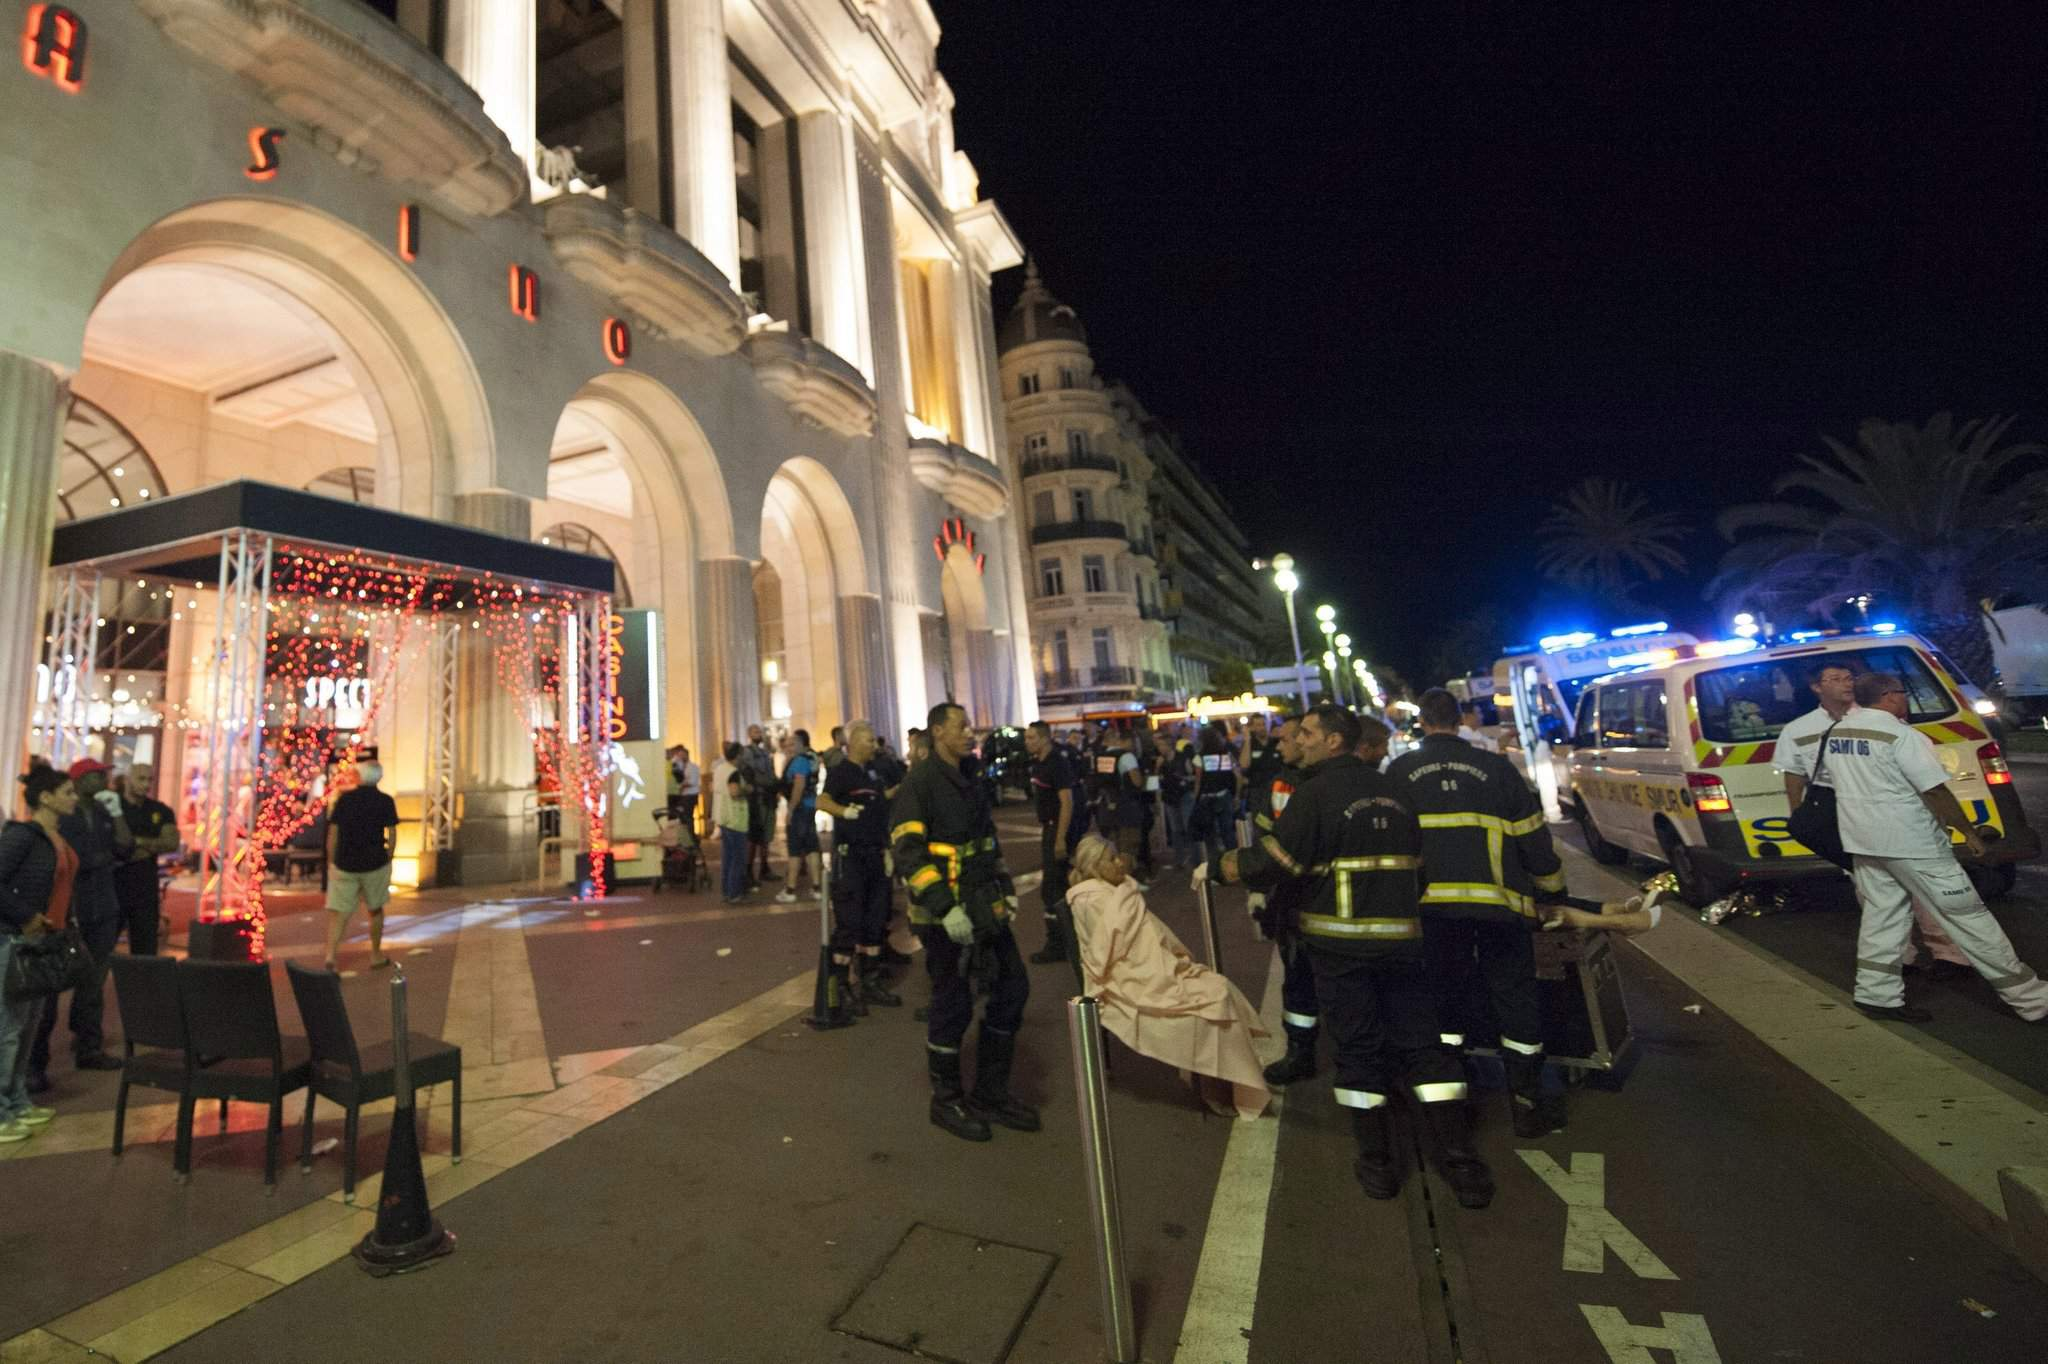 Breaking news – Hungarian woman injured in Nice truck attack – UPDATE